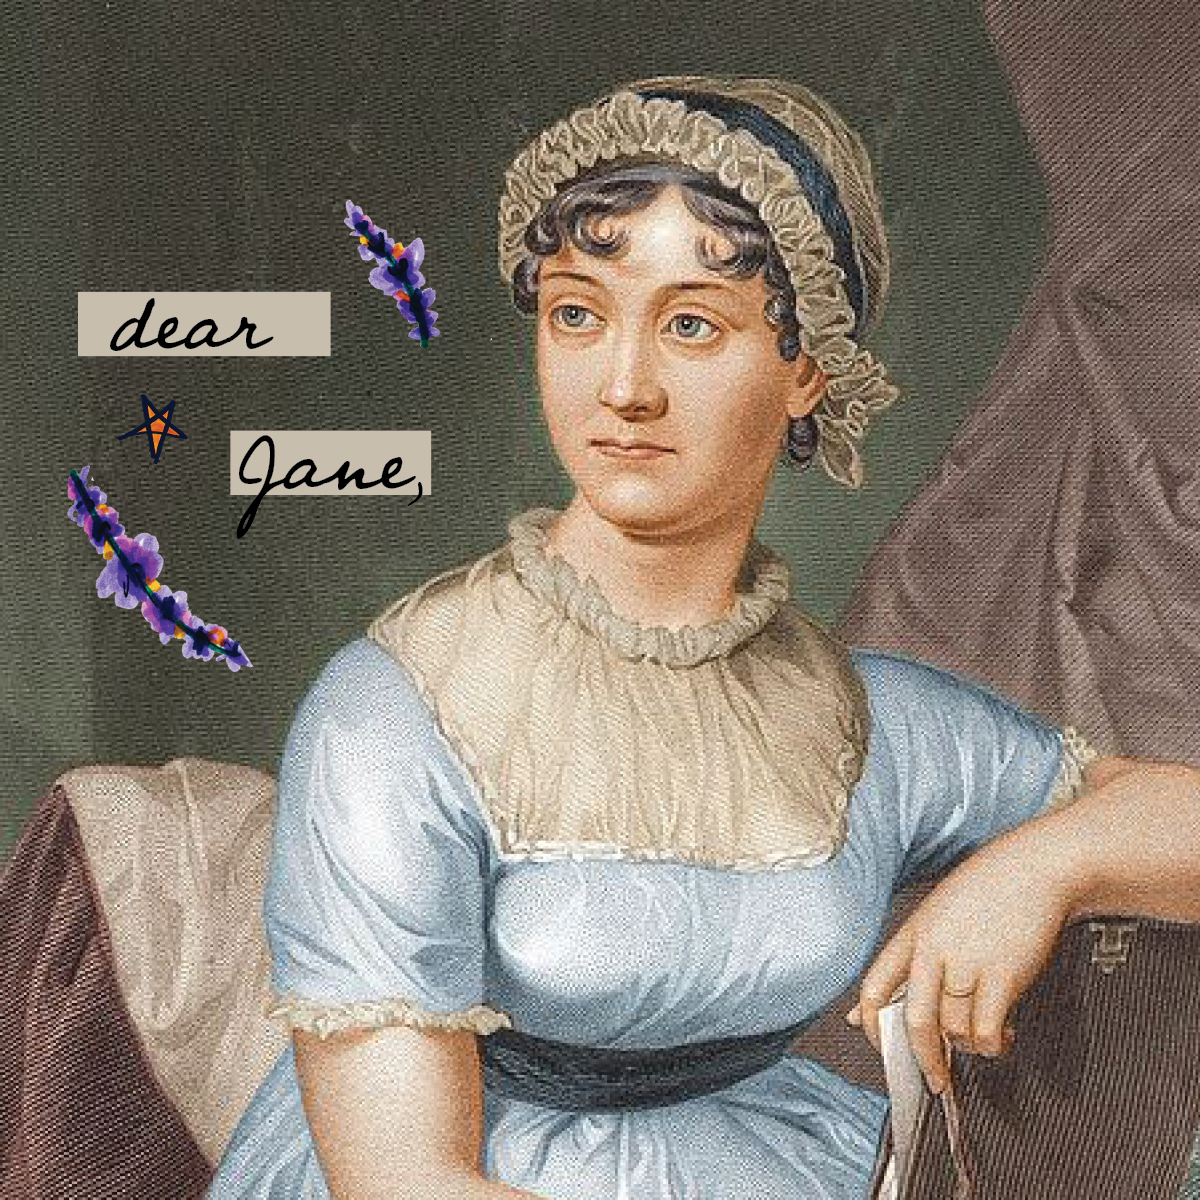 Grace-Gay-Remembering-Jane-Austen.png